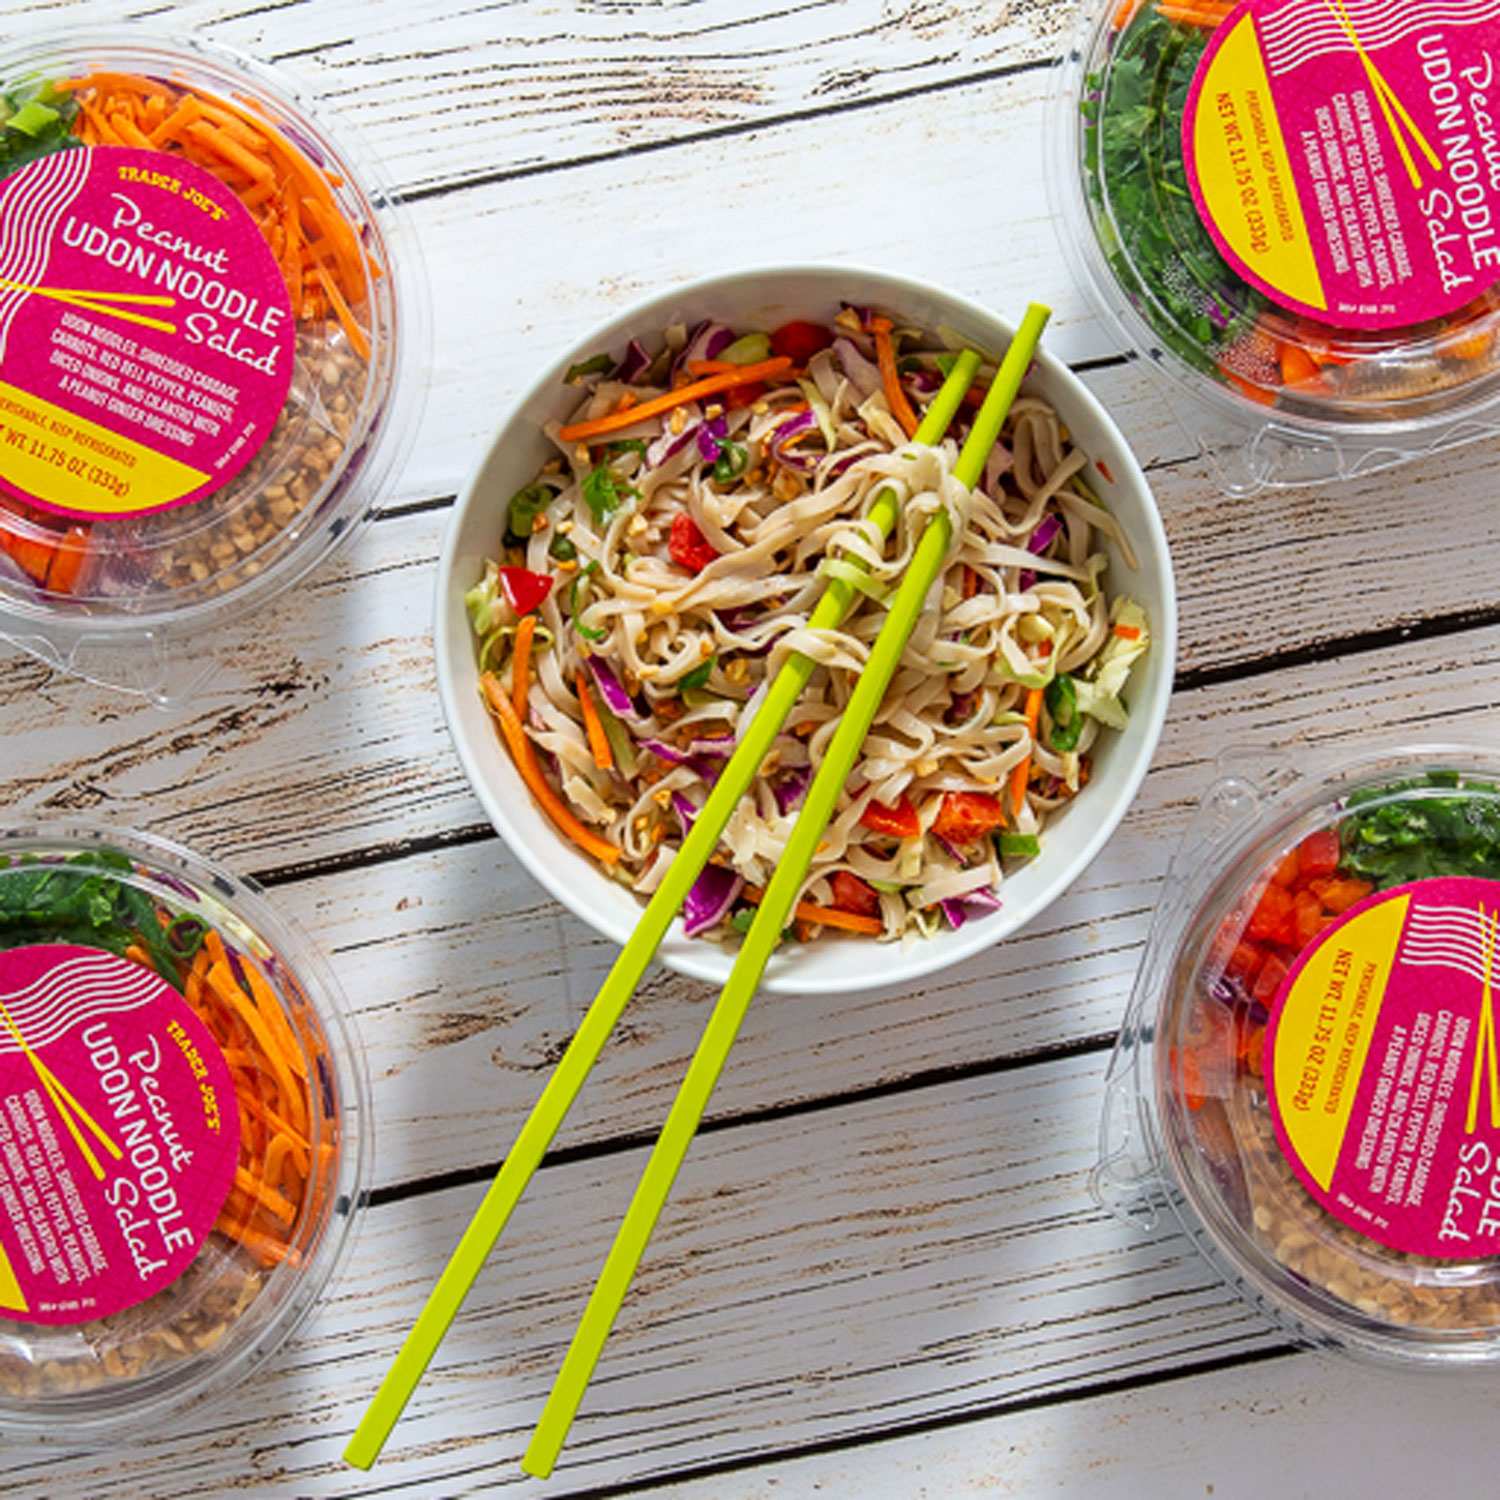 Trader Joe's Peanut Udon Noodle Salad Is Our New Favorite No-Cook Lunch